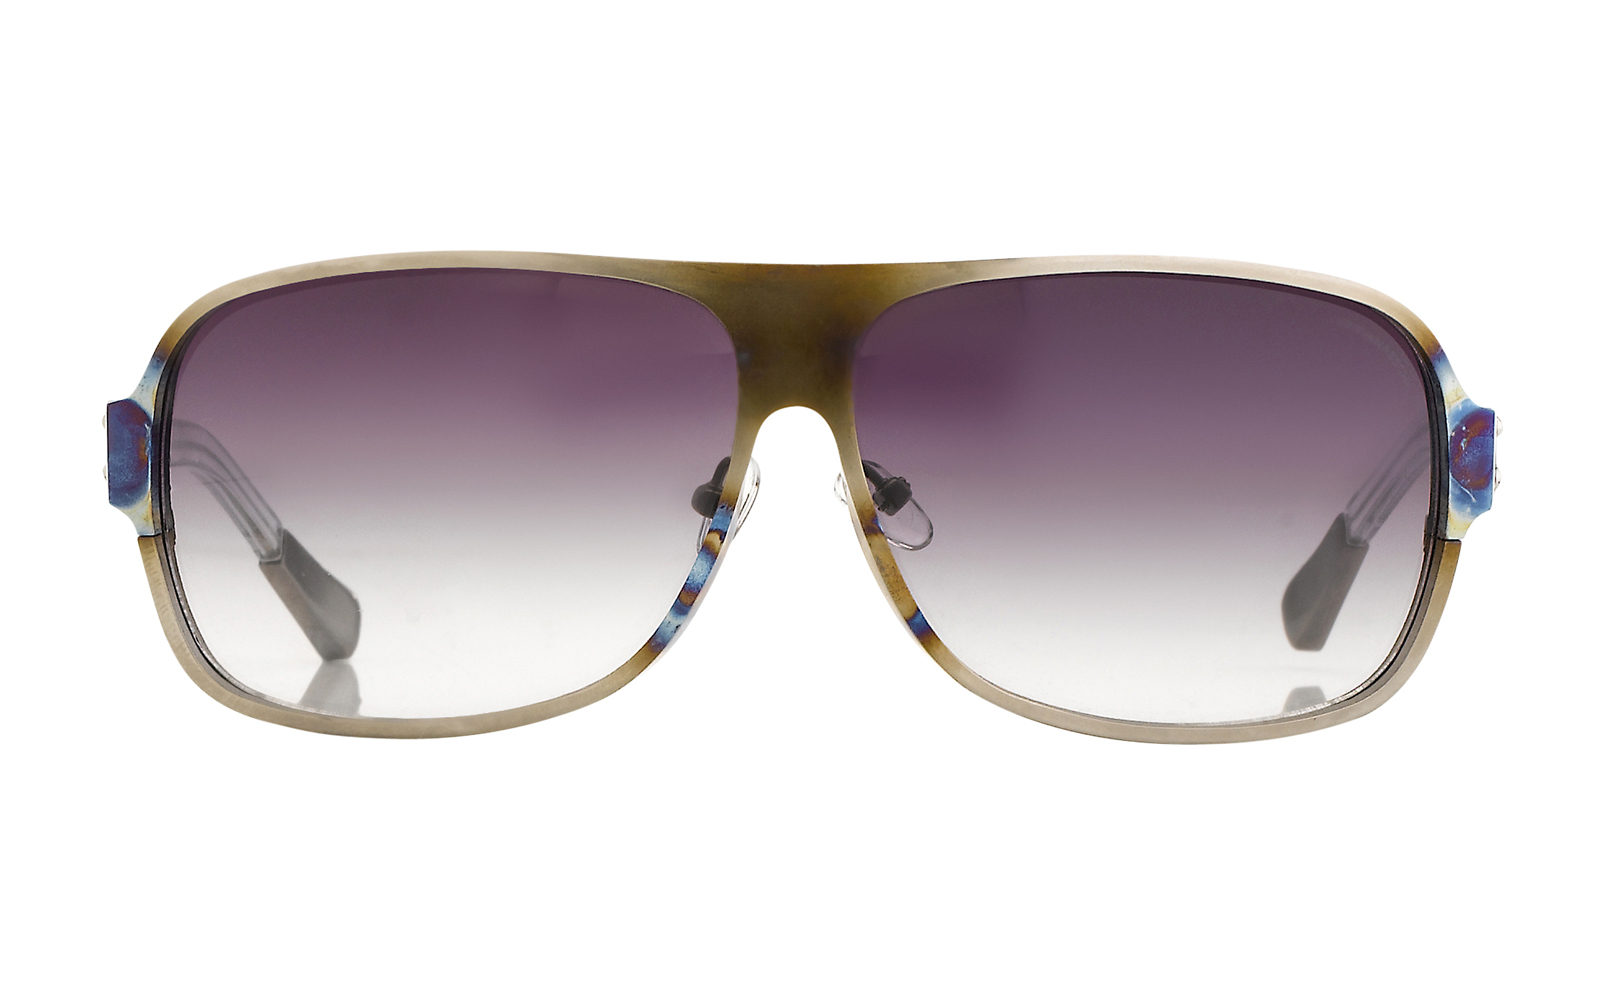 #KrisVanAssche #Men 6 C5 #sunglasses available now at #SunglassCurator